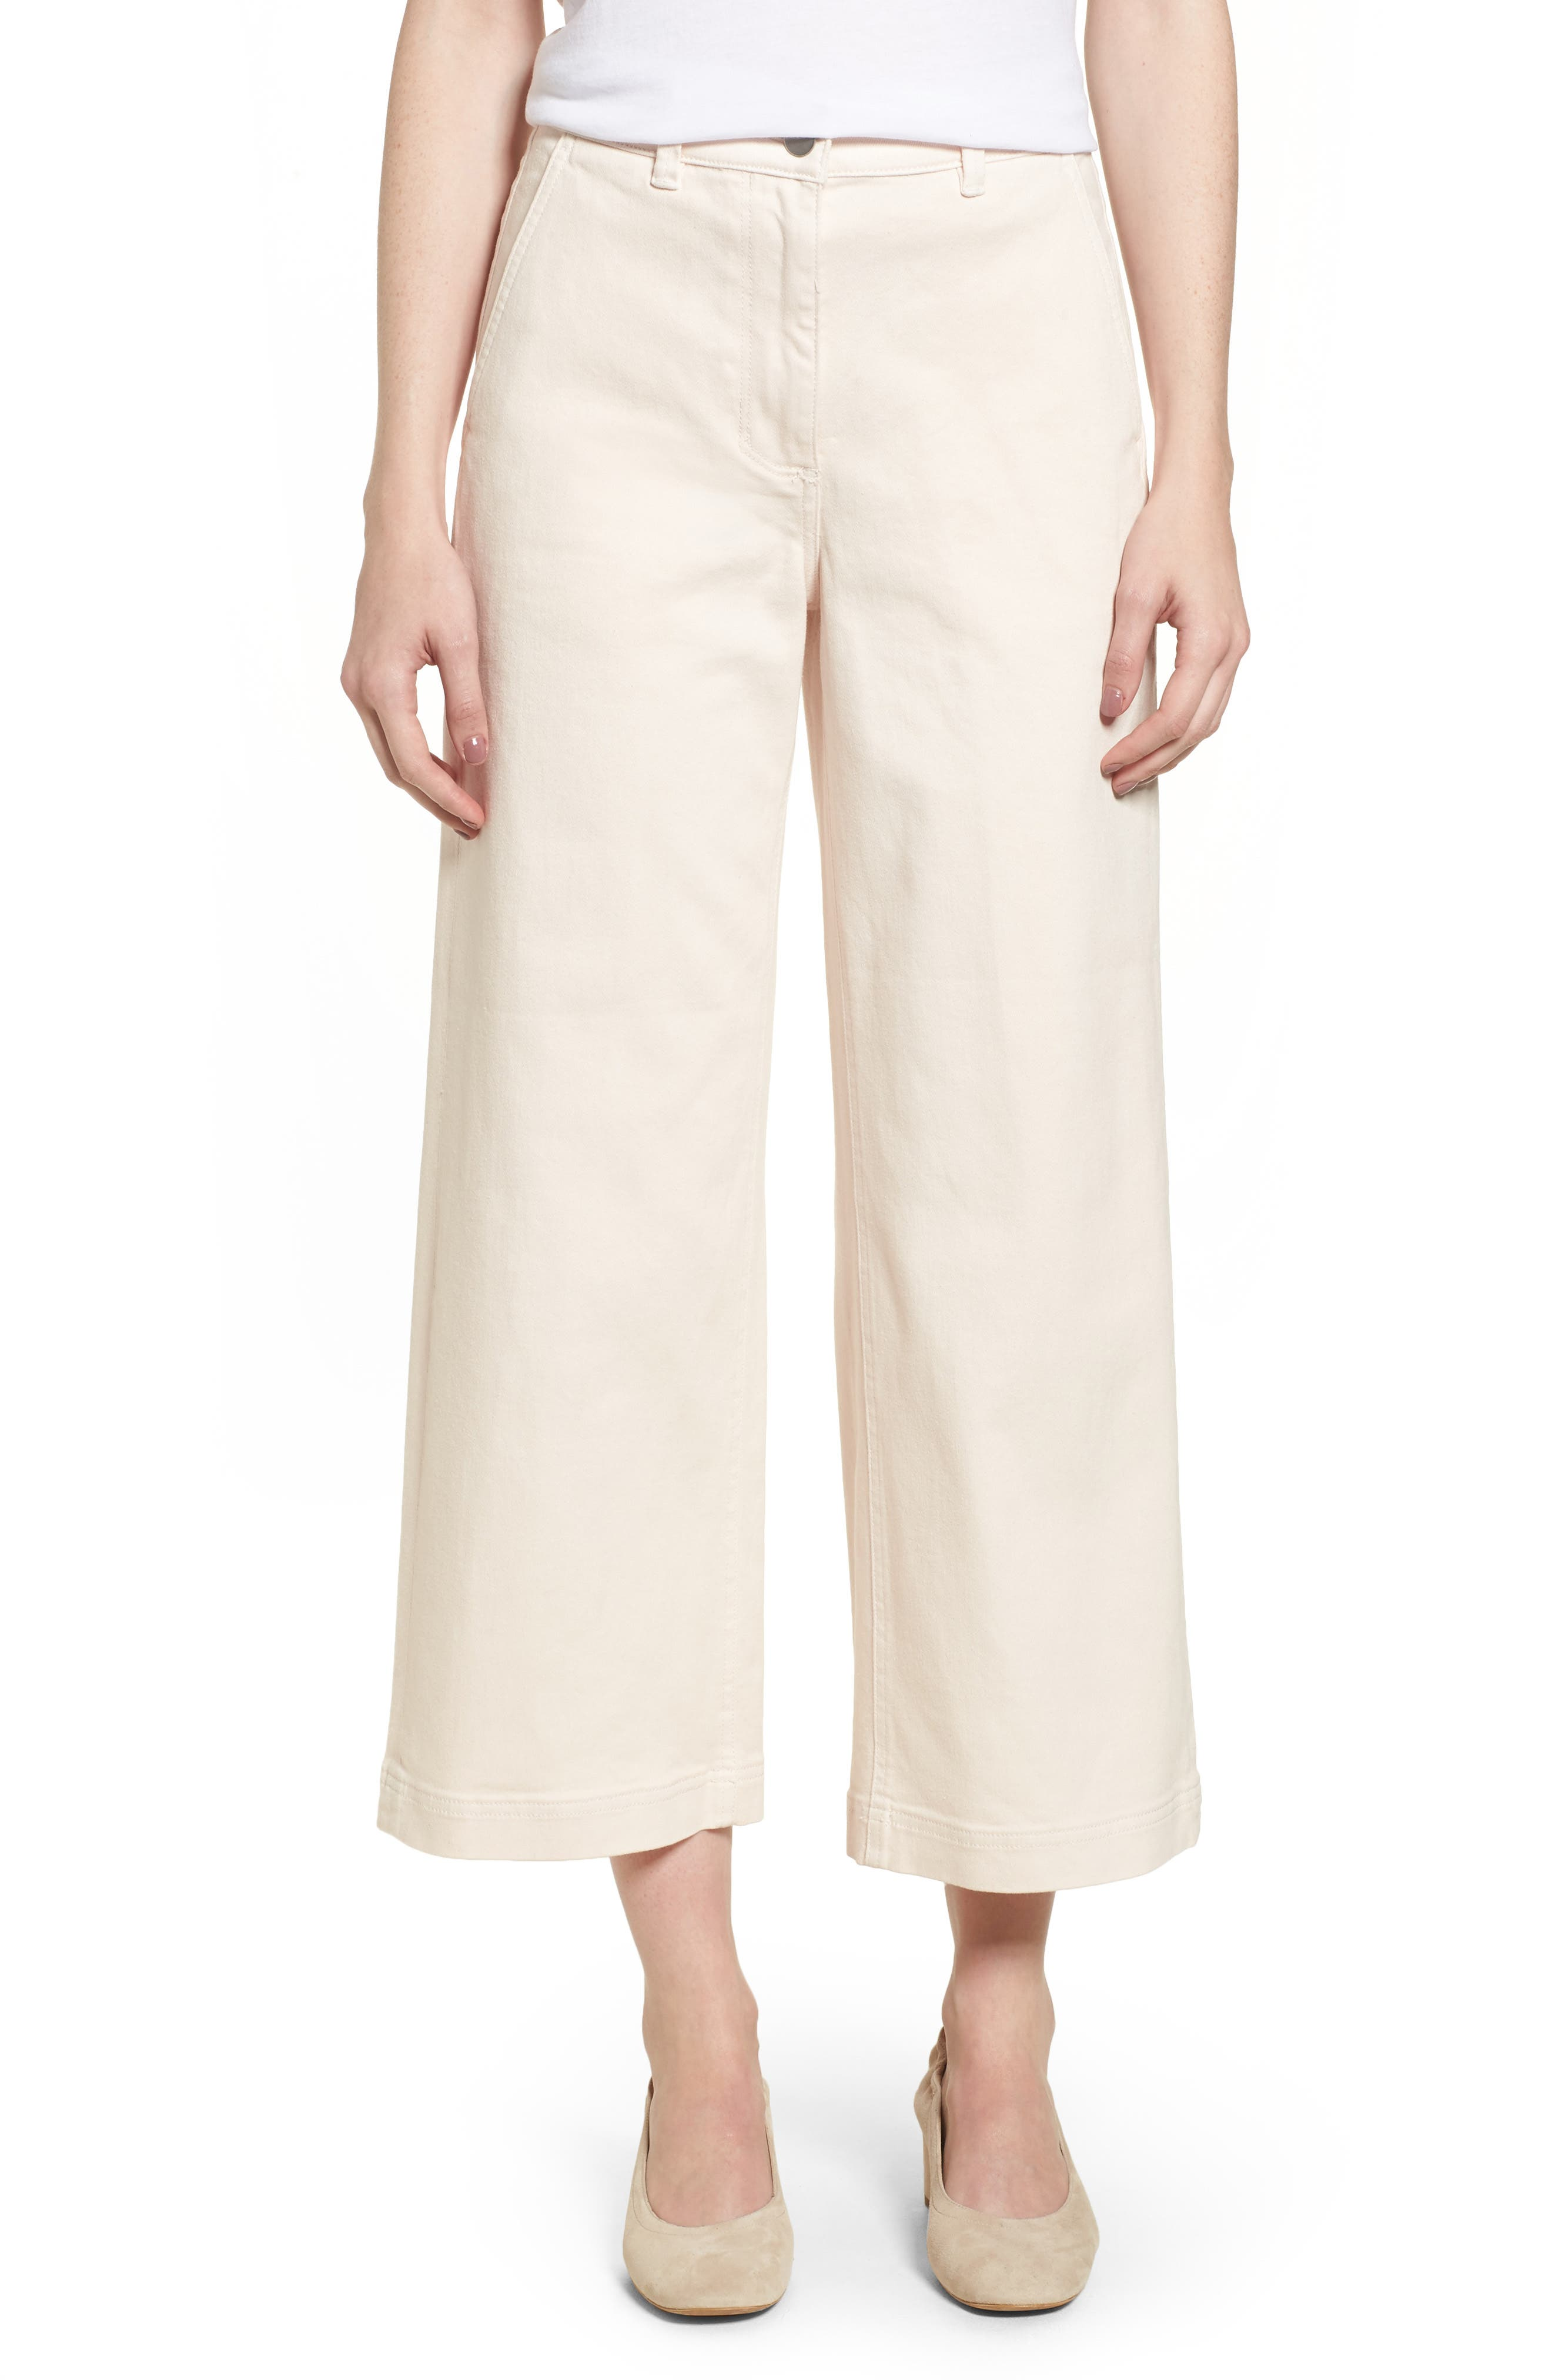 Alternate Image 1 Selected - Everlane The Wide Leg Crop Pants